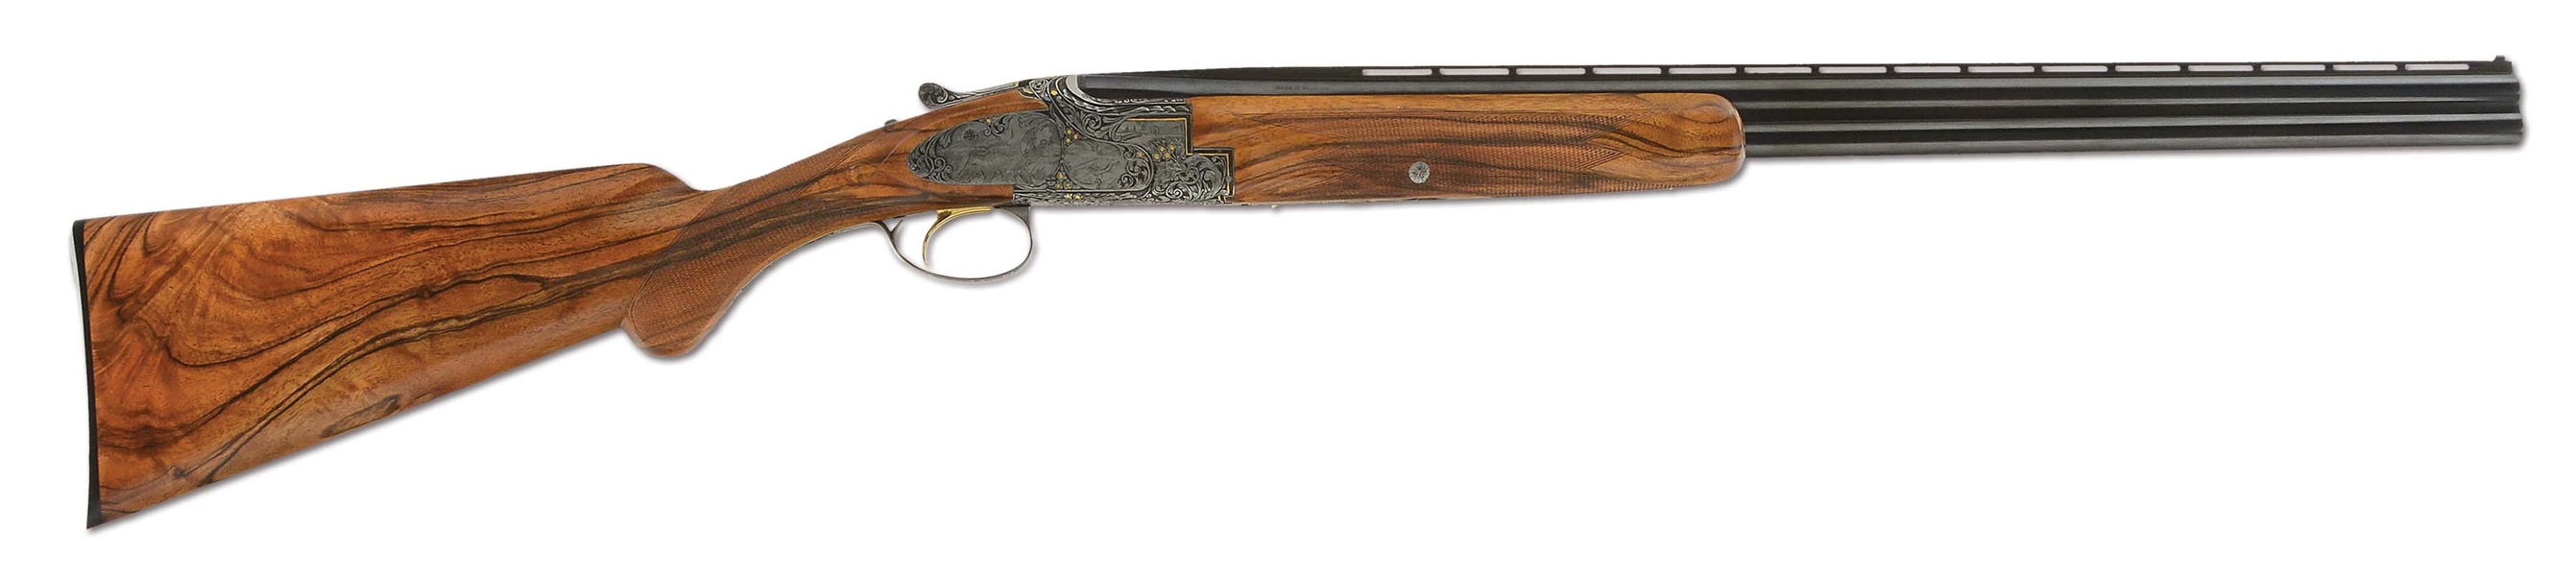 (C) Customized Browning Superposed 20 Gauge Over-Under Shotgun with Relief Engraving and Gold Inlay by Ron Reimer (1961).